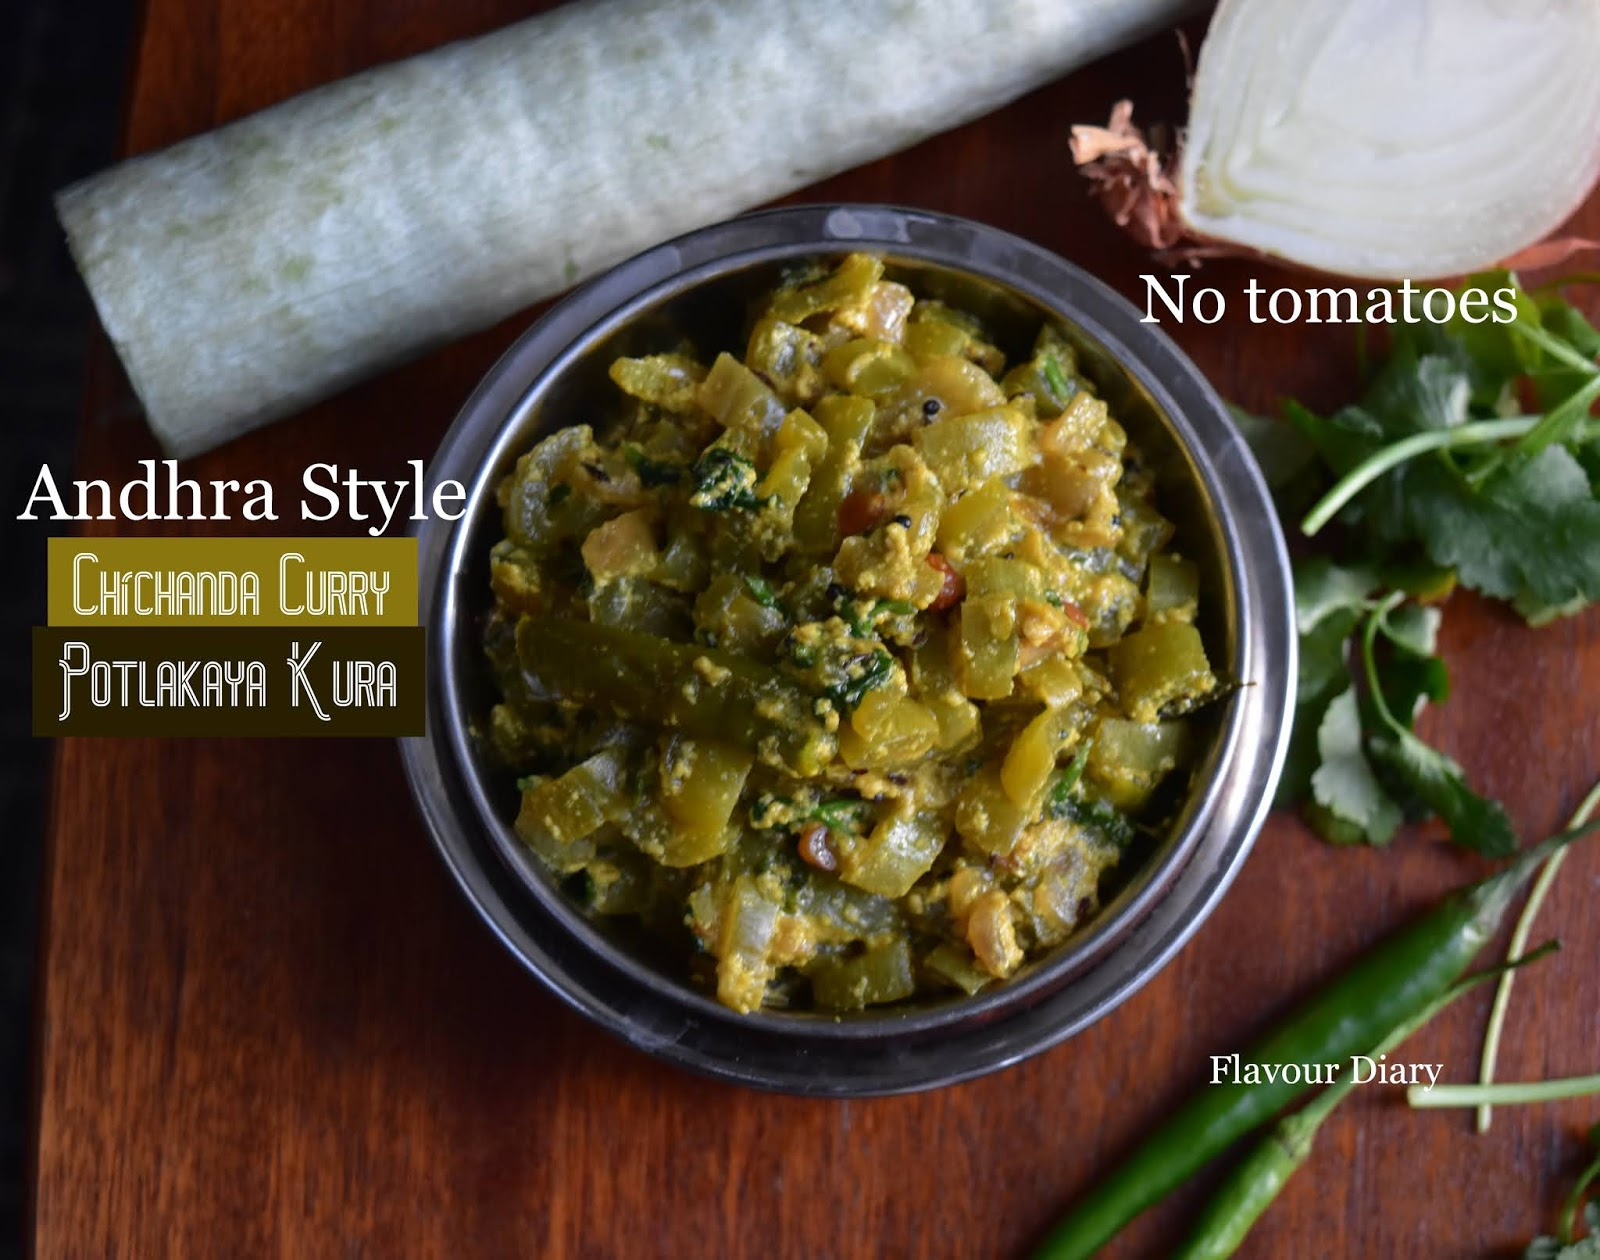 Chichanda Milk Curry recipe Potlakaya Pala Kura Snake Gourd Indian Veg Curry |  Flavour Diary